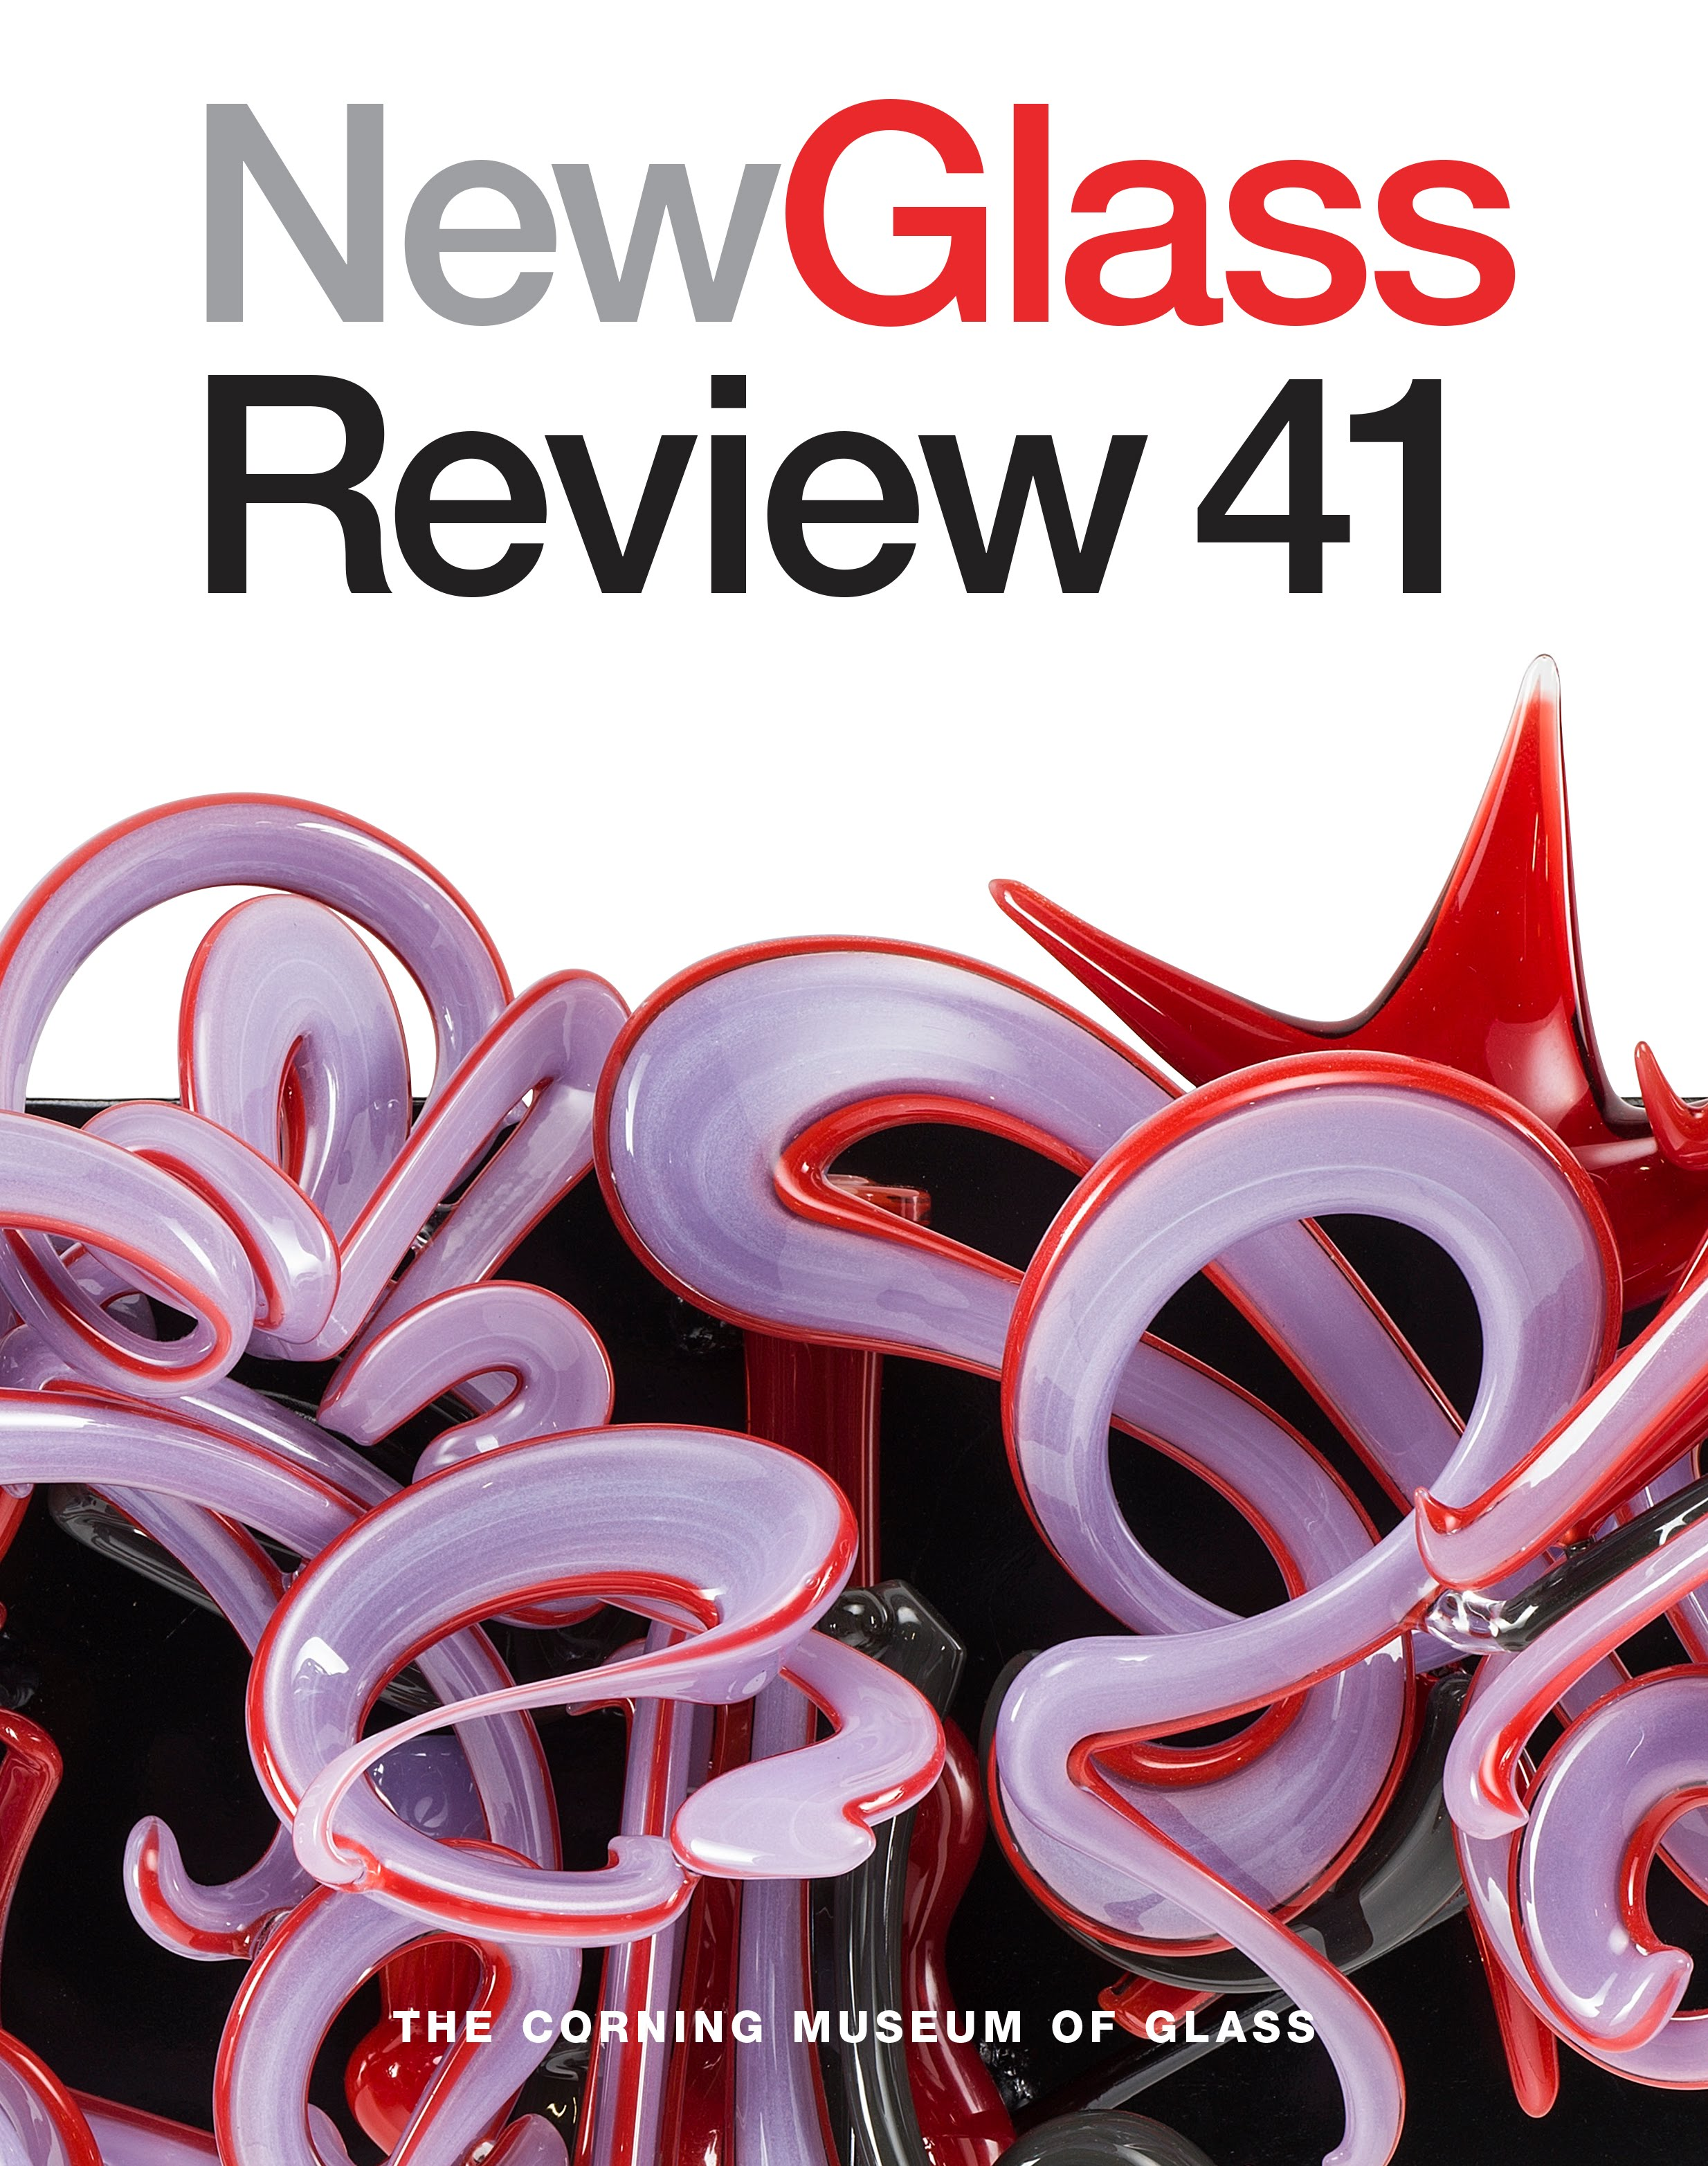 https://www.cmog.org/publication/new-glass-review-41